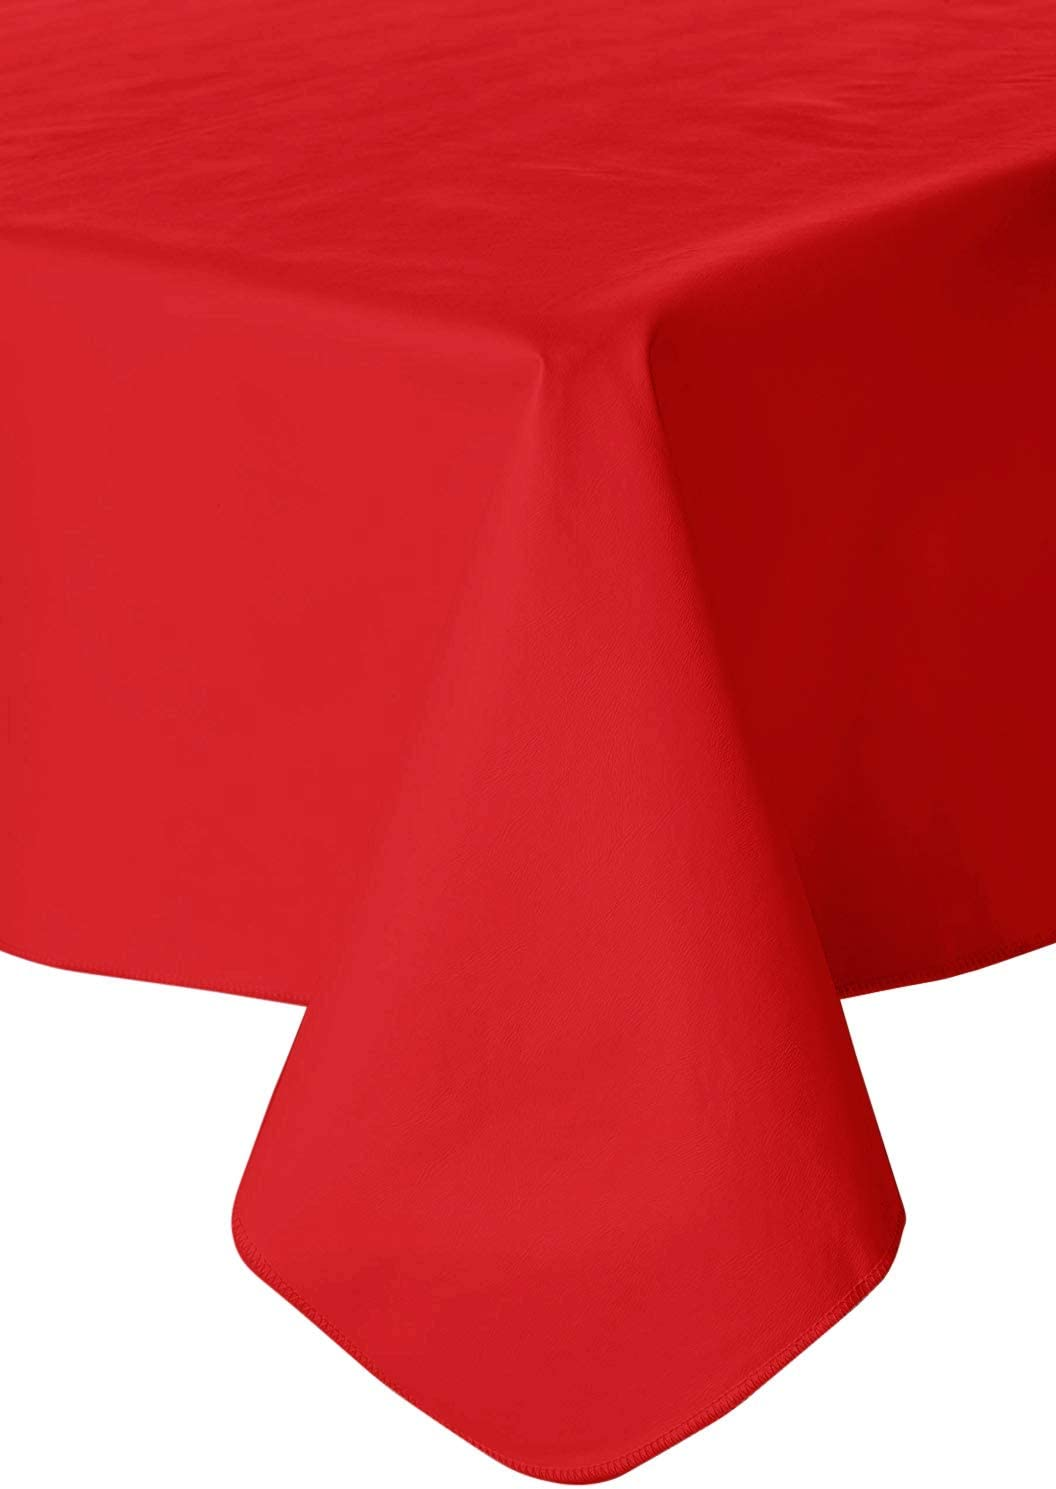 Fairfax Collection Galaxy Heavyweight Vinyl Tablecloth, 60-Inch by 90-Inch Oval, Ruby Red